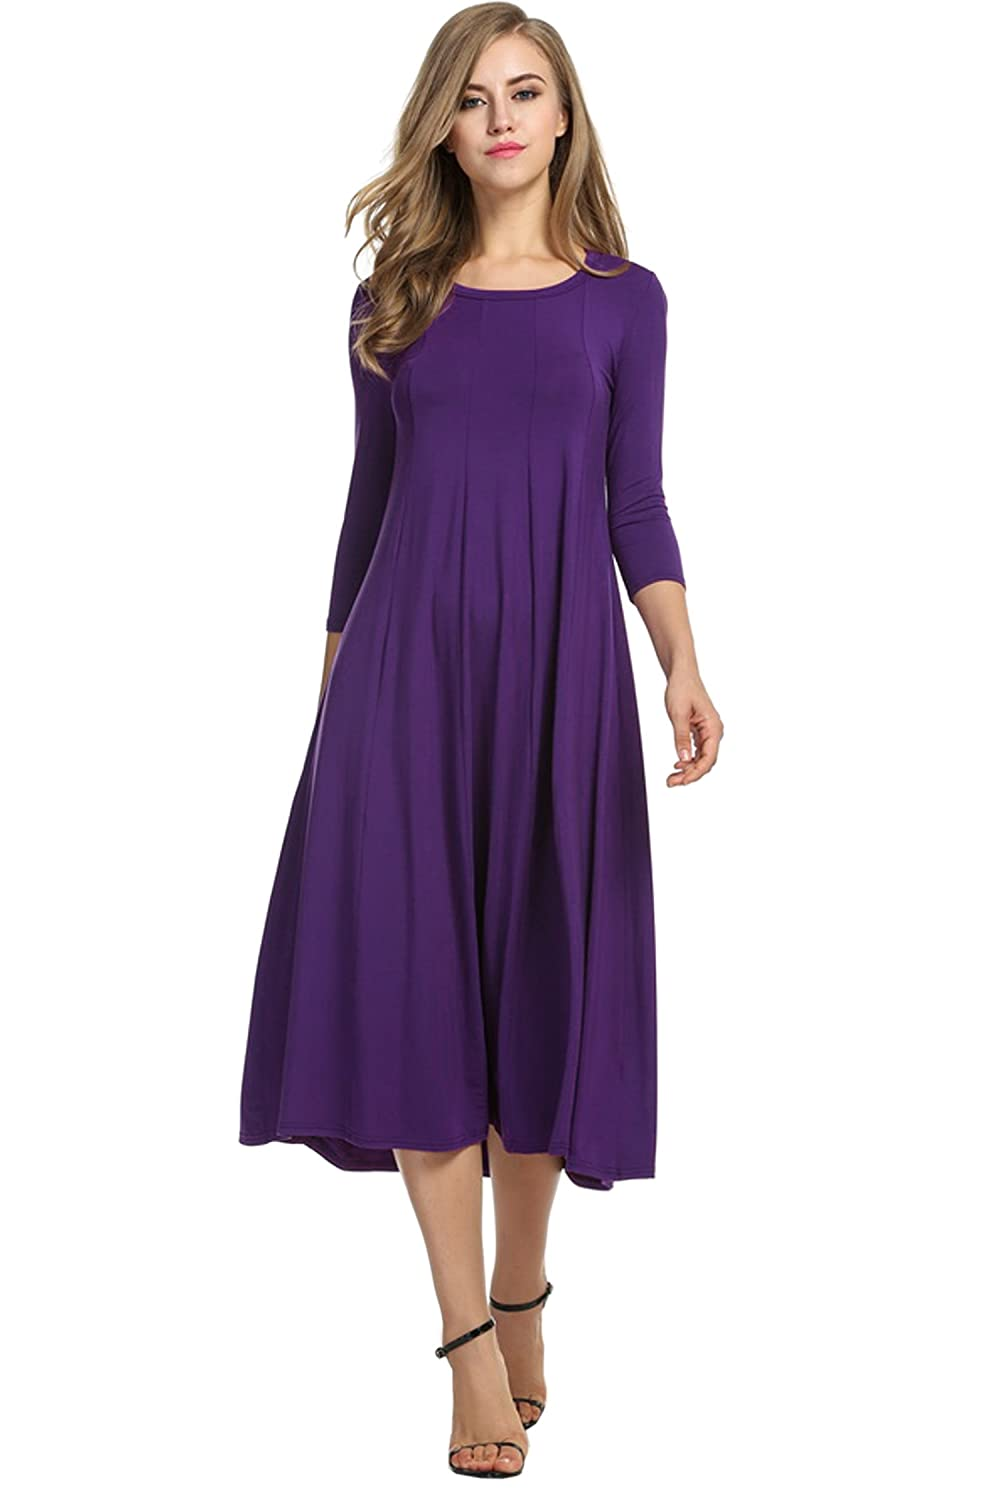 HOTOUCH Women's 3/4 Sleeve A-line and Flare Midi Long Dress AMH005140